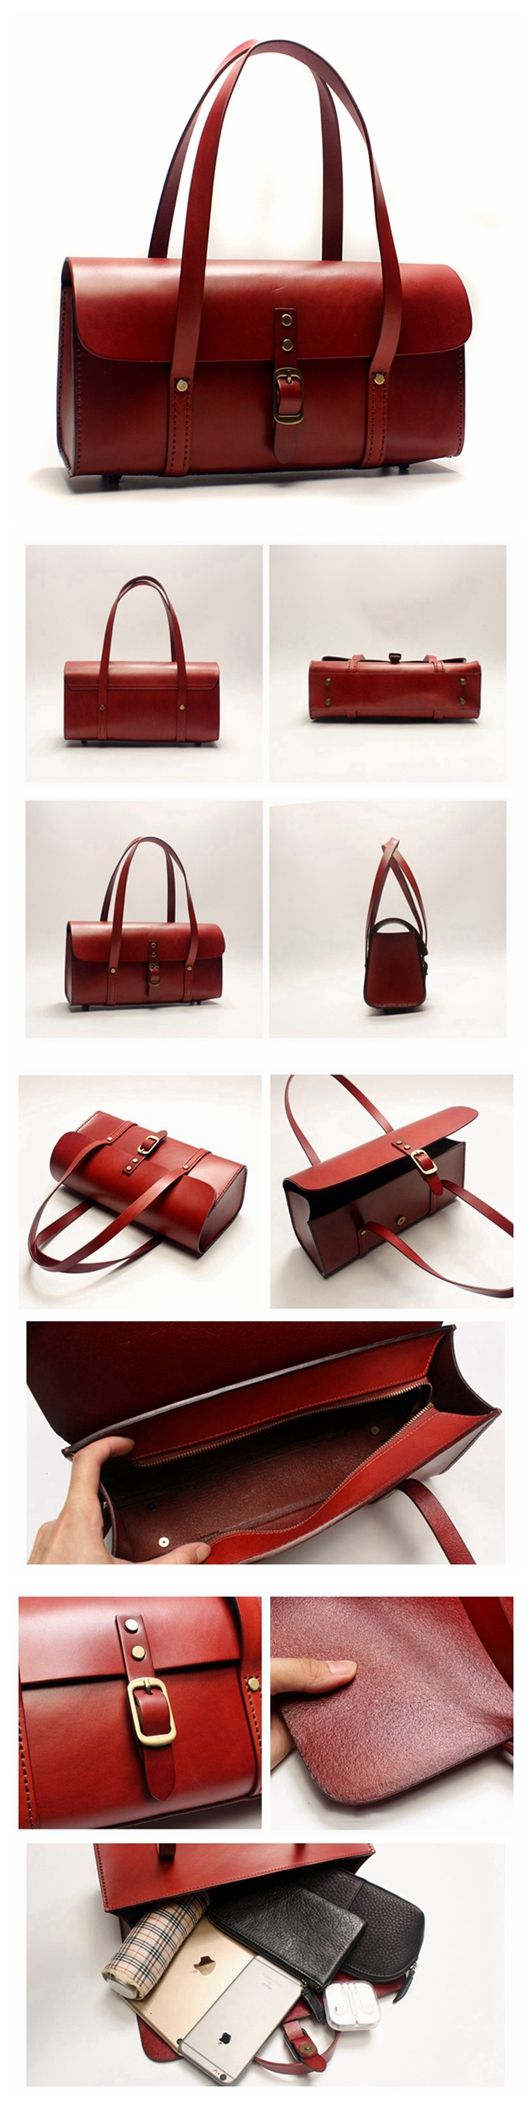 Handmade Awesome Vegetable Tanned Leather Barrel Bag Women's Fashion Handbag Shoulder Bag in Red SQ05--LISABAG